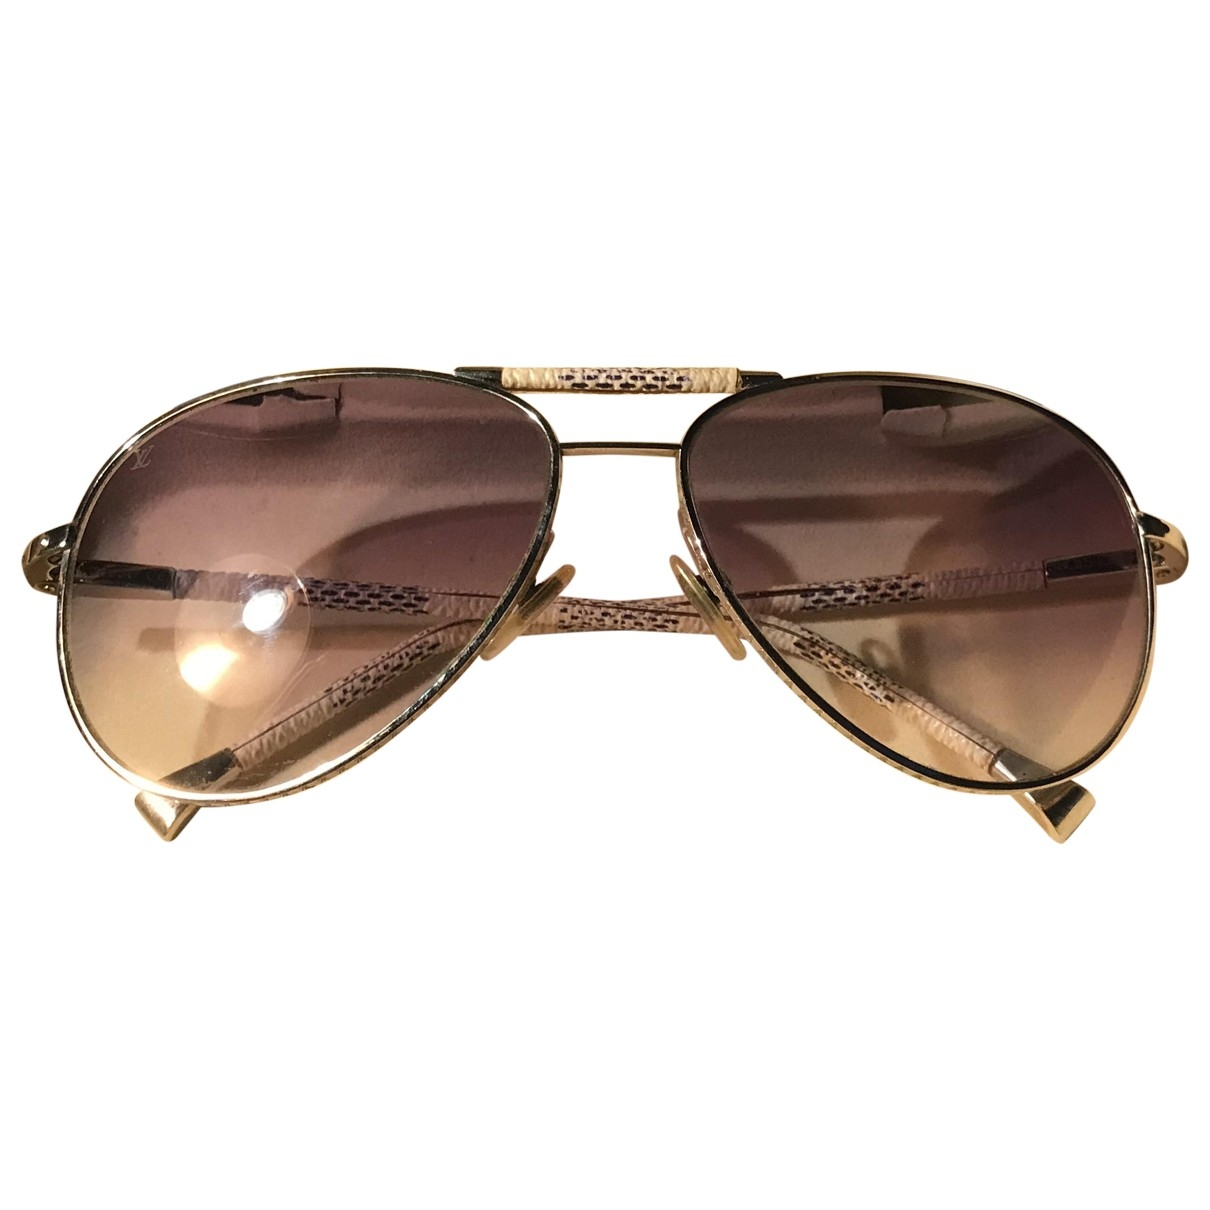 Gafas de aviador Louis Vuitton